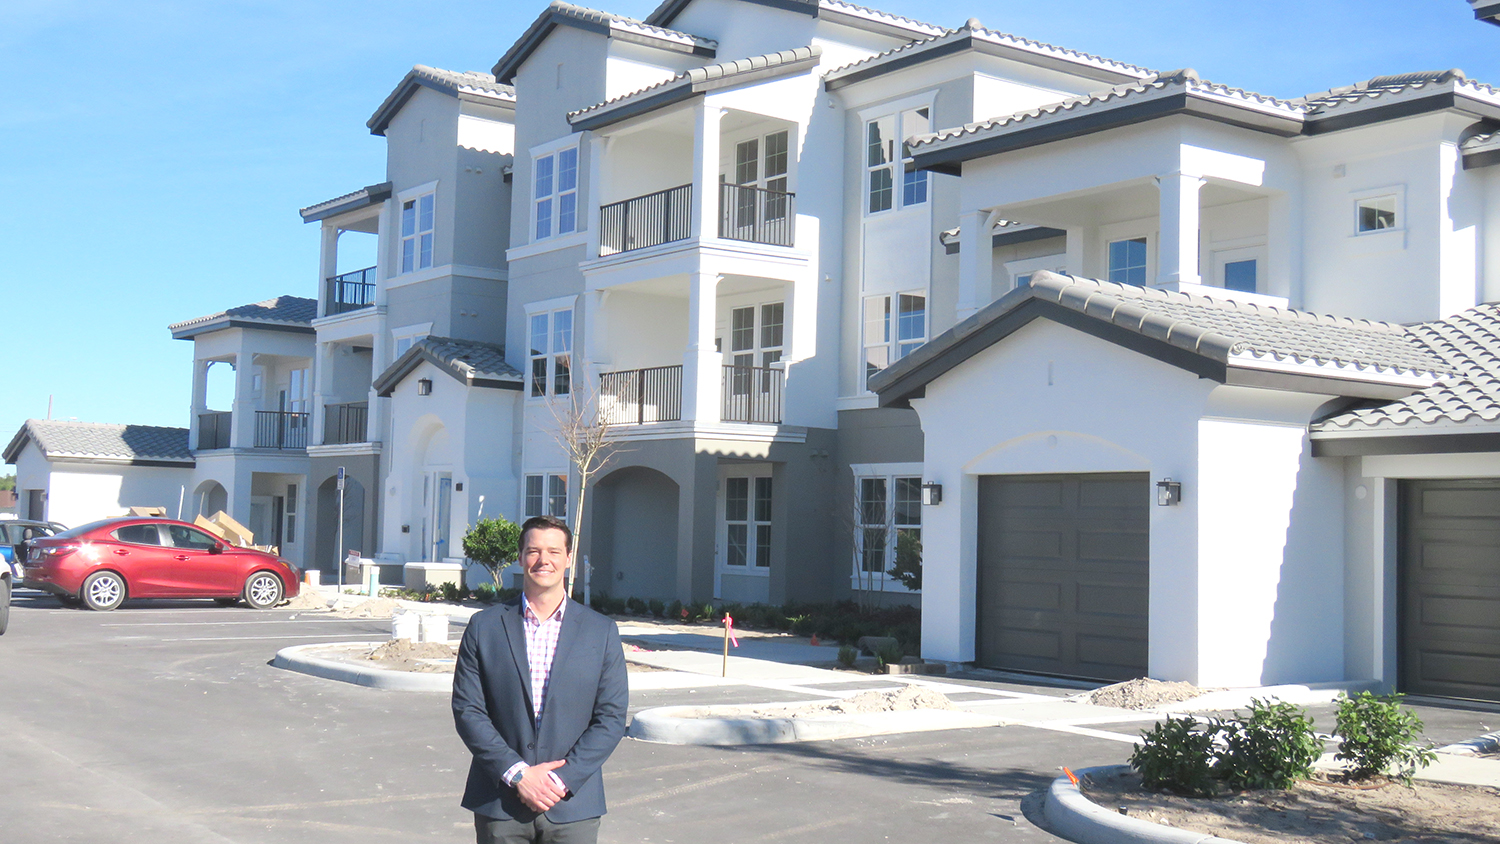 Local Rental Options Expand The Observer News South Shore